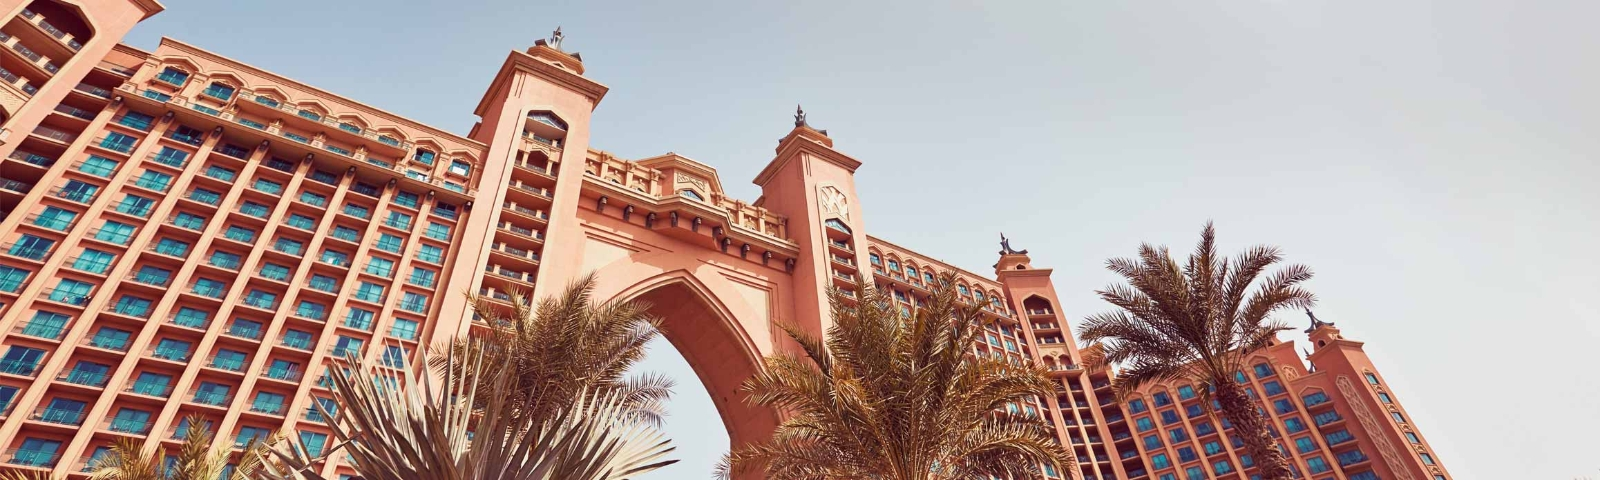 Dubai All Inclusive Resorts & Hotels for Vacations $114